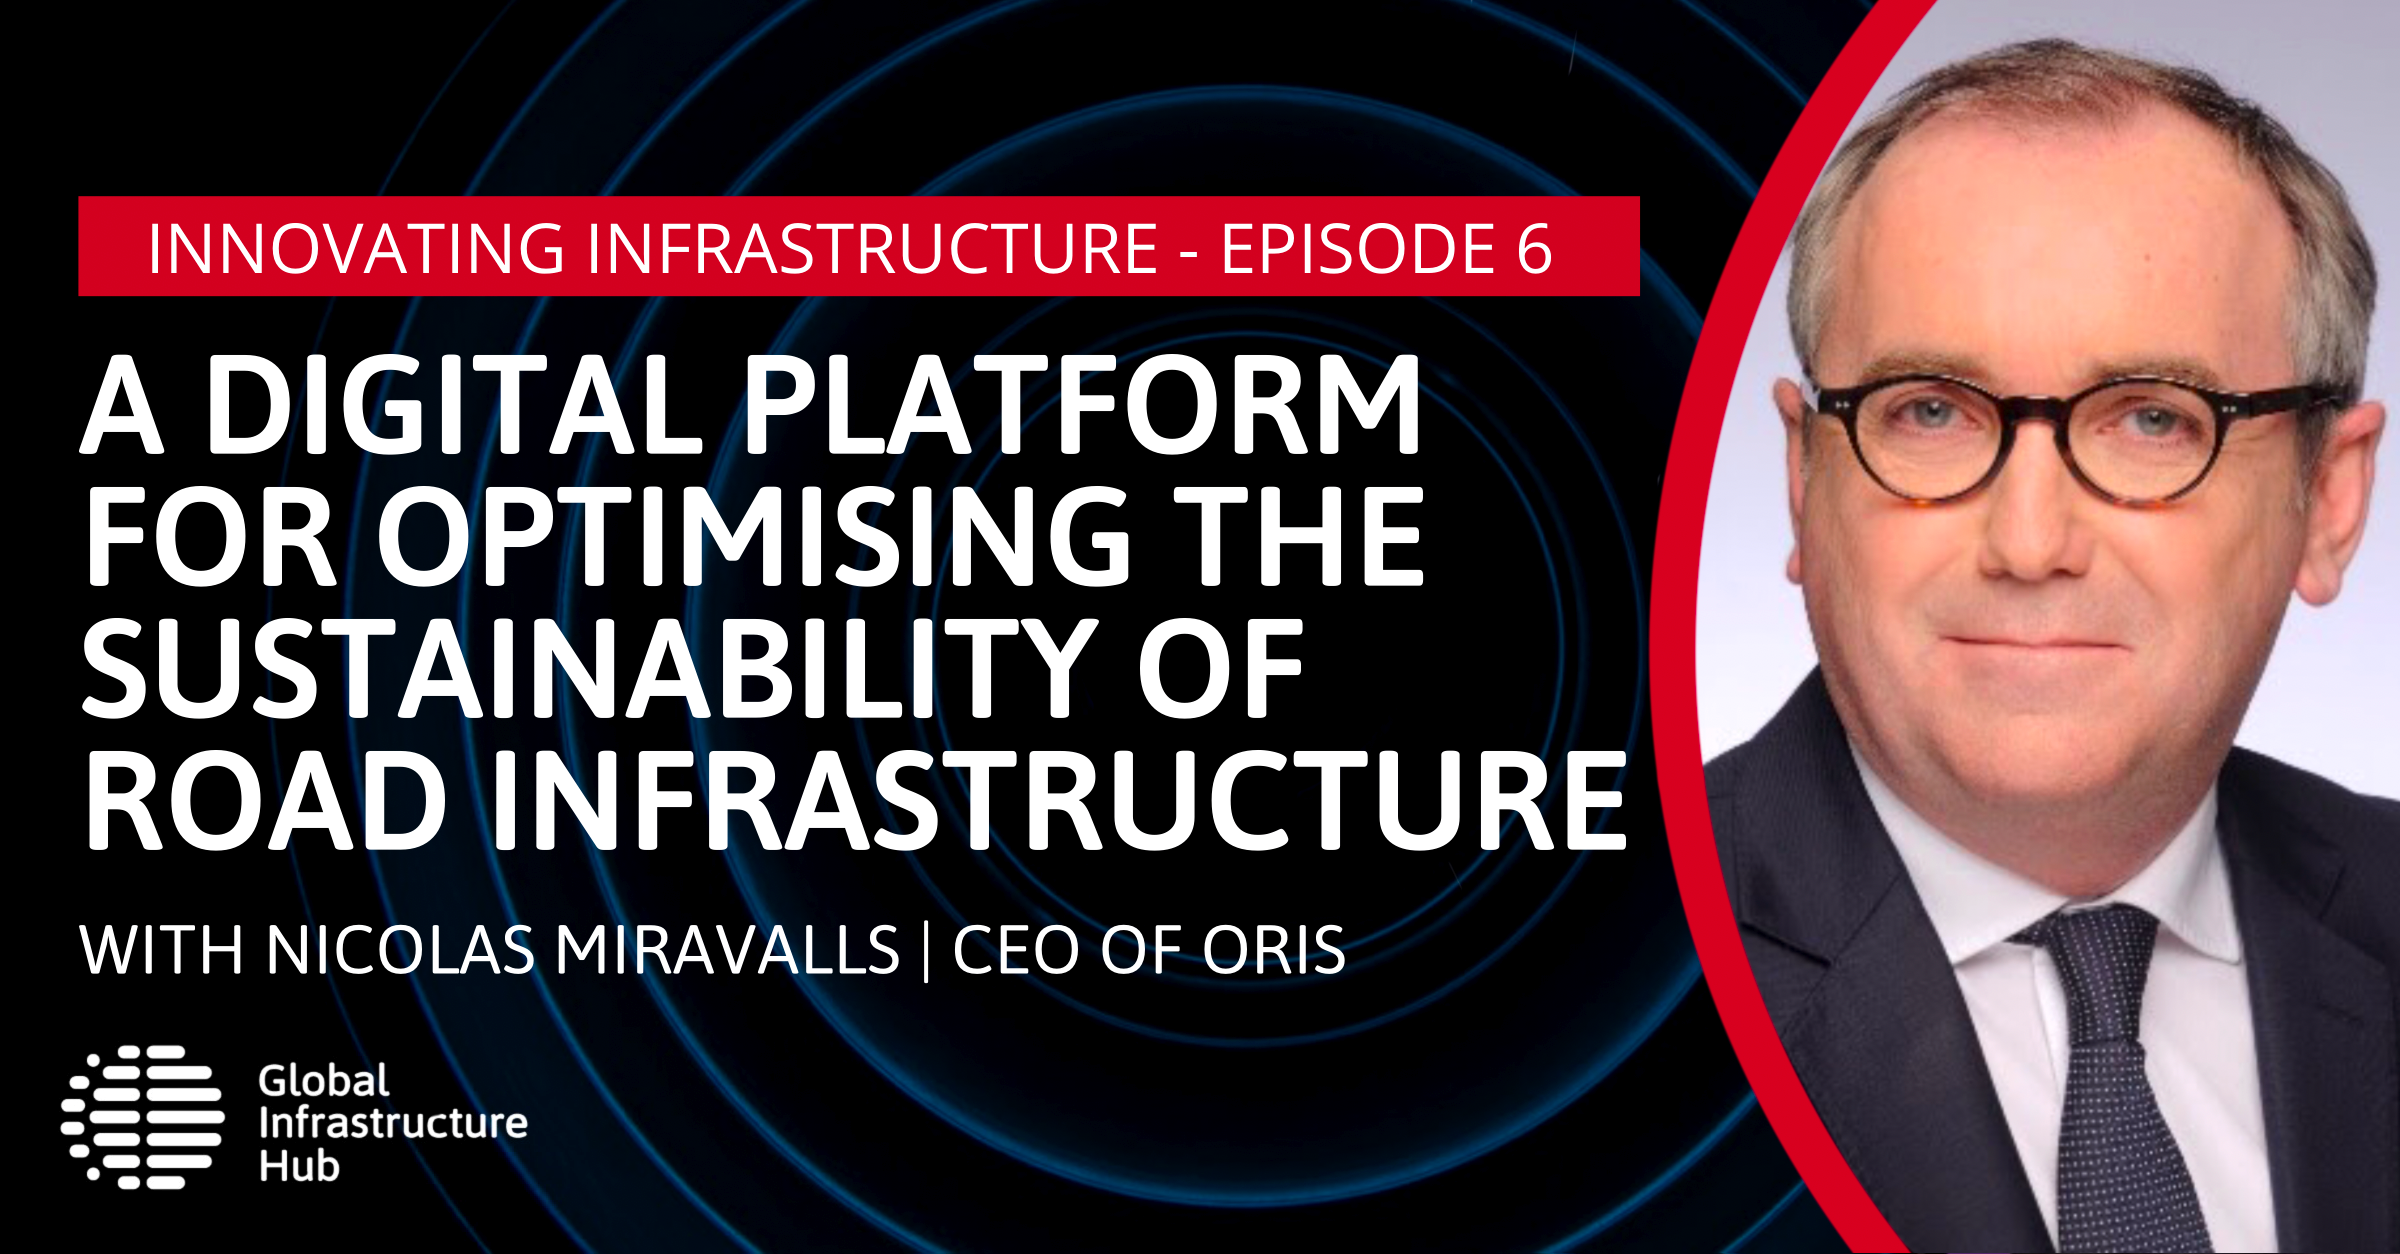 A digital platform for optimising the sustainability of road infrastructure